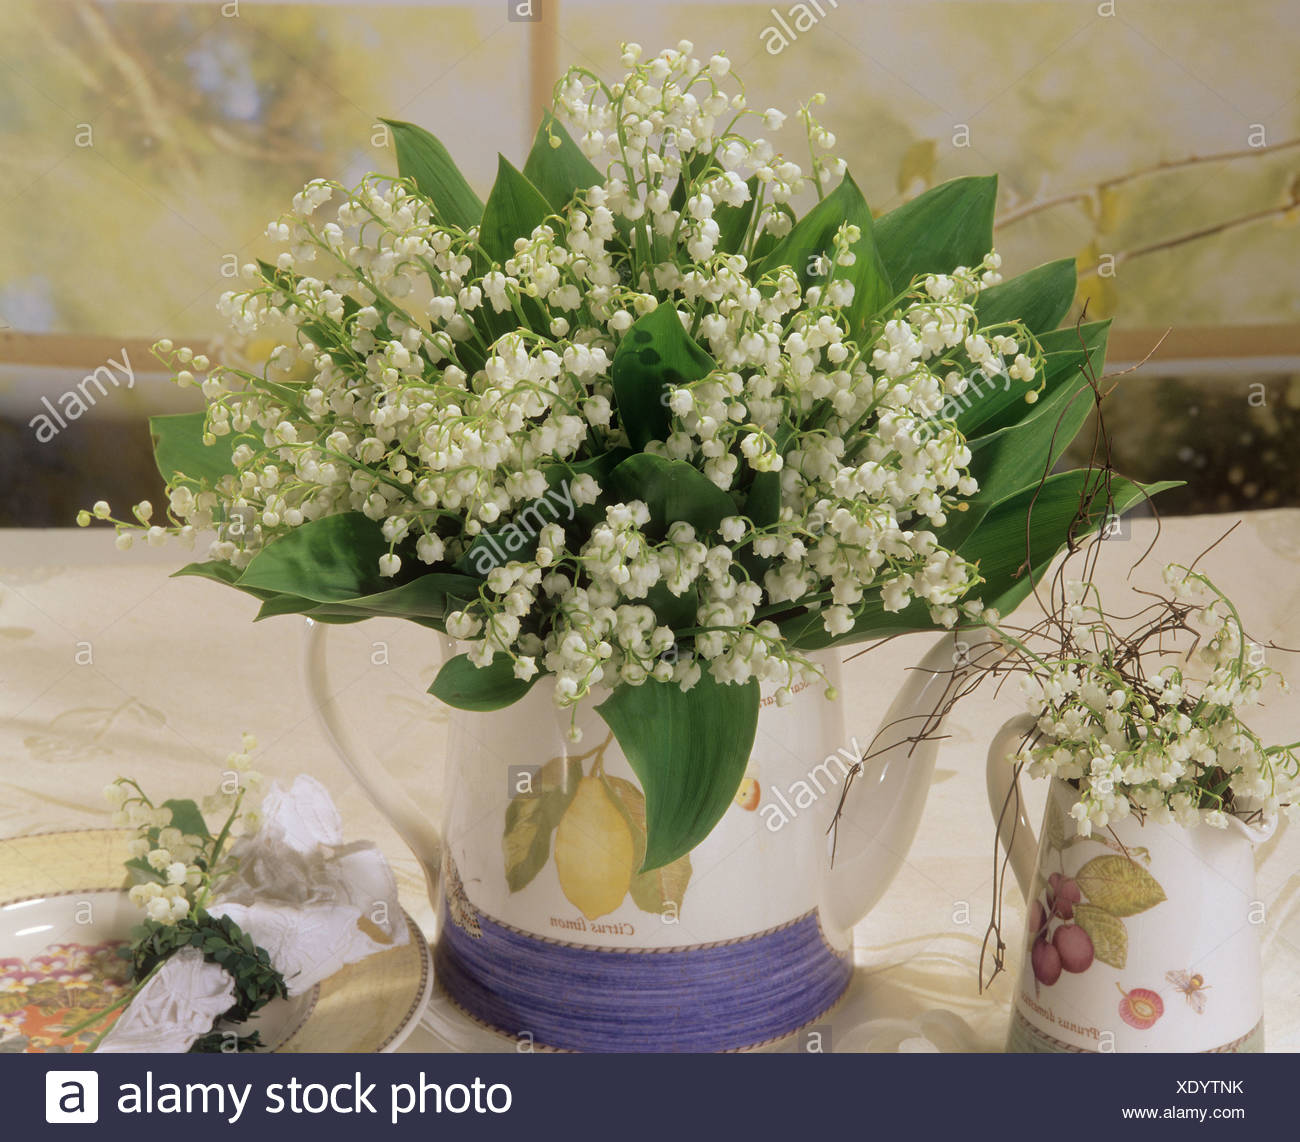 Bouquet with lilies of the valley stock photo 283968543 alamy bouquet with lilies of the valley izmirmasajfo